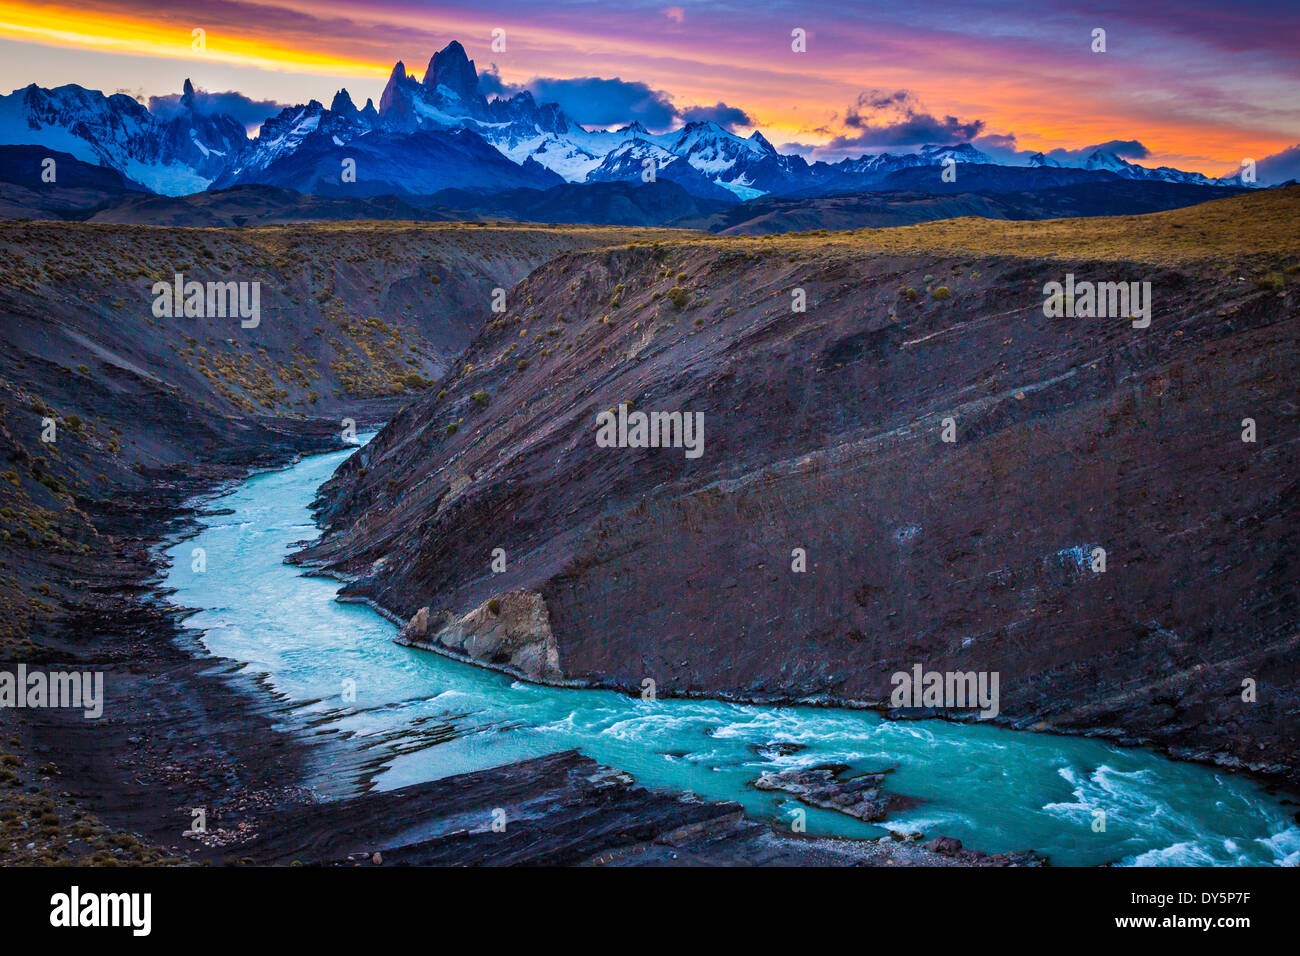 Mount Fitz Roy is a mountain located near El Chaltén village, Patagonia, Argentina - Stock Image